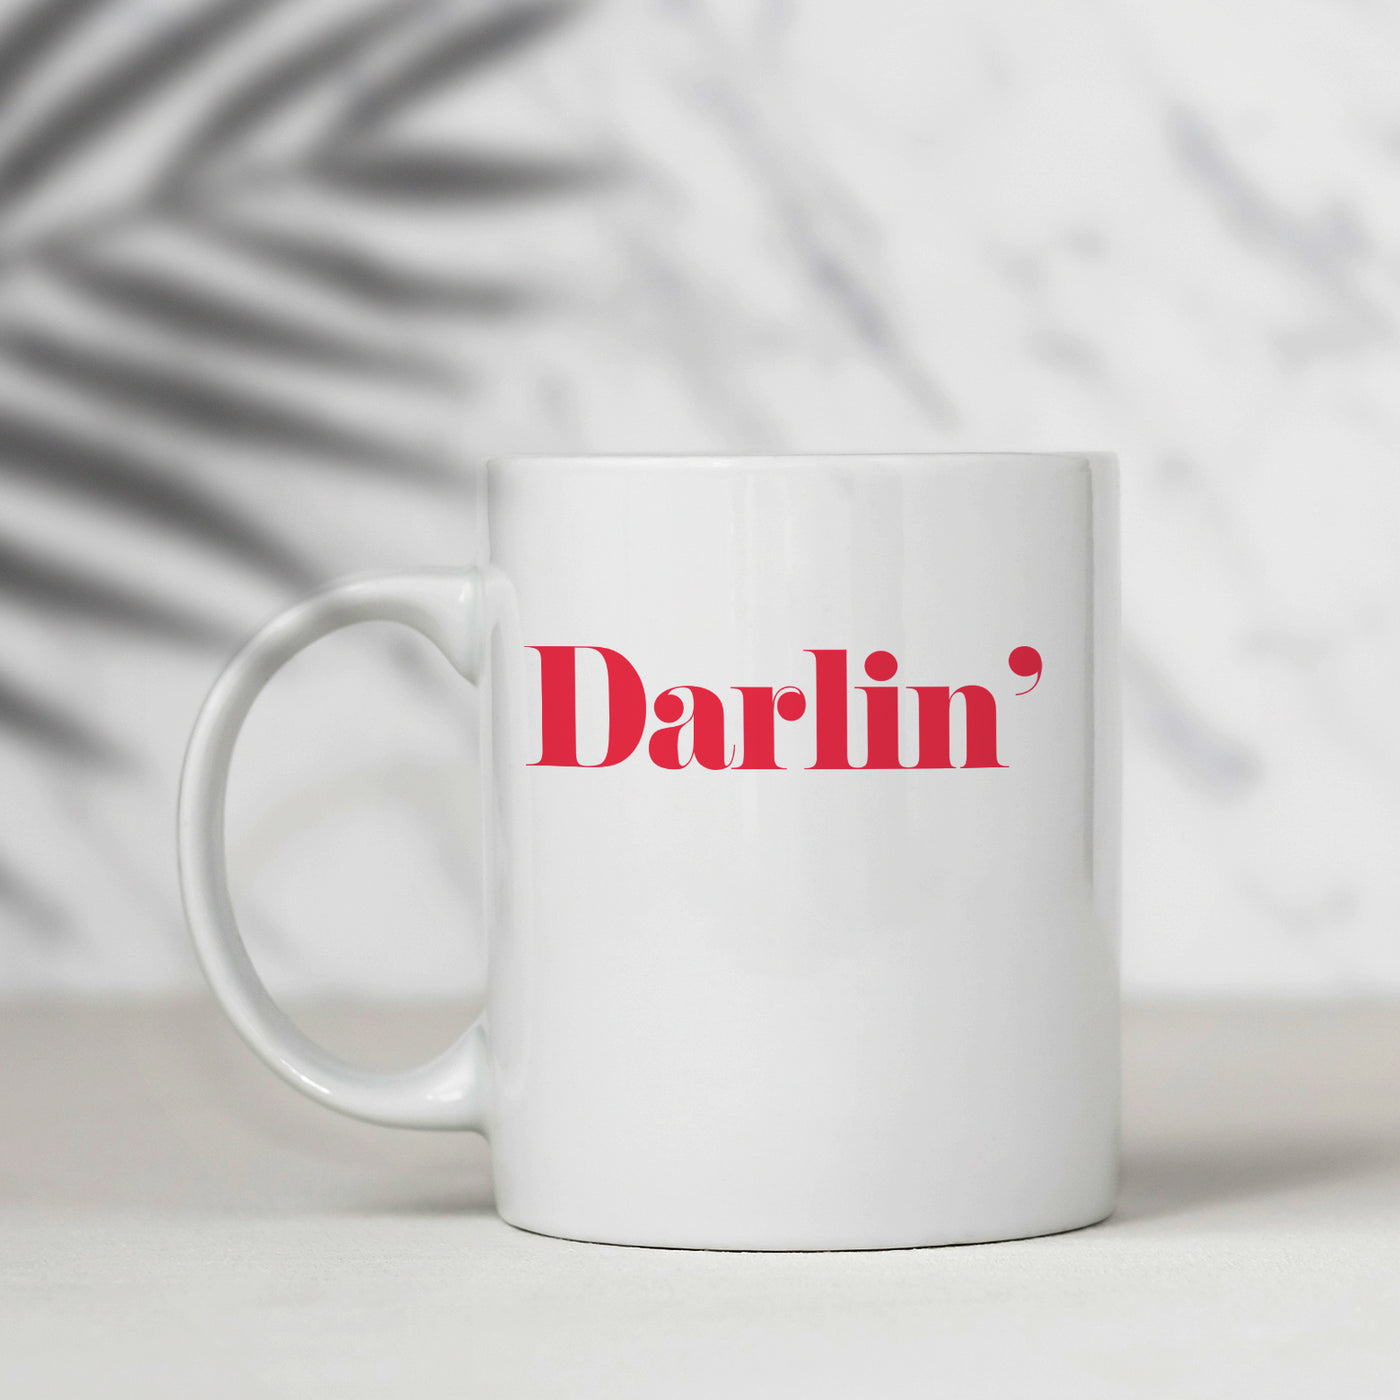 Darlin Mug - THE PRINTABLE CONCEPT - Printable art posterDigital Download -